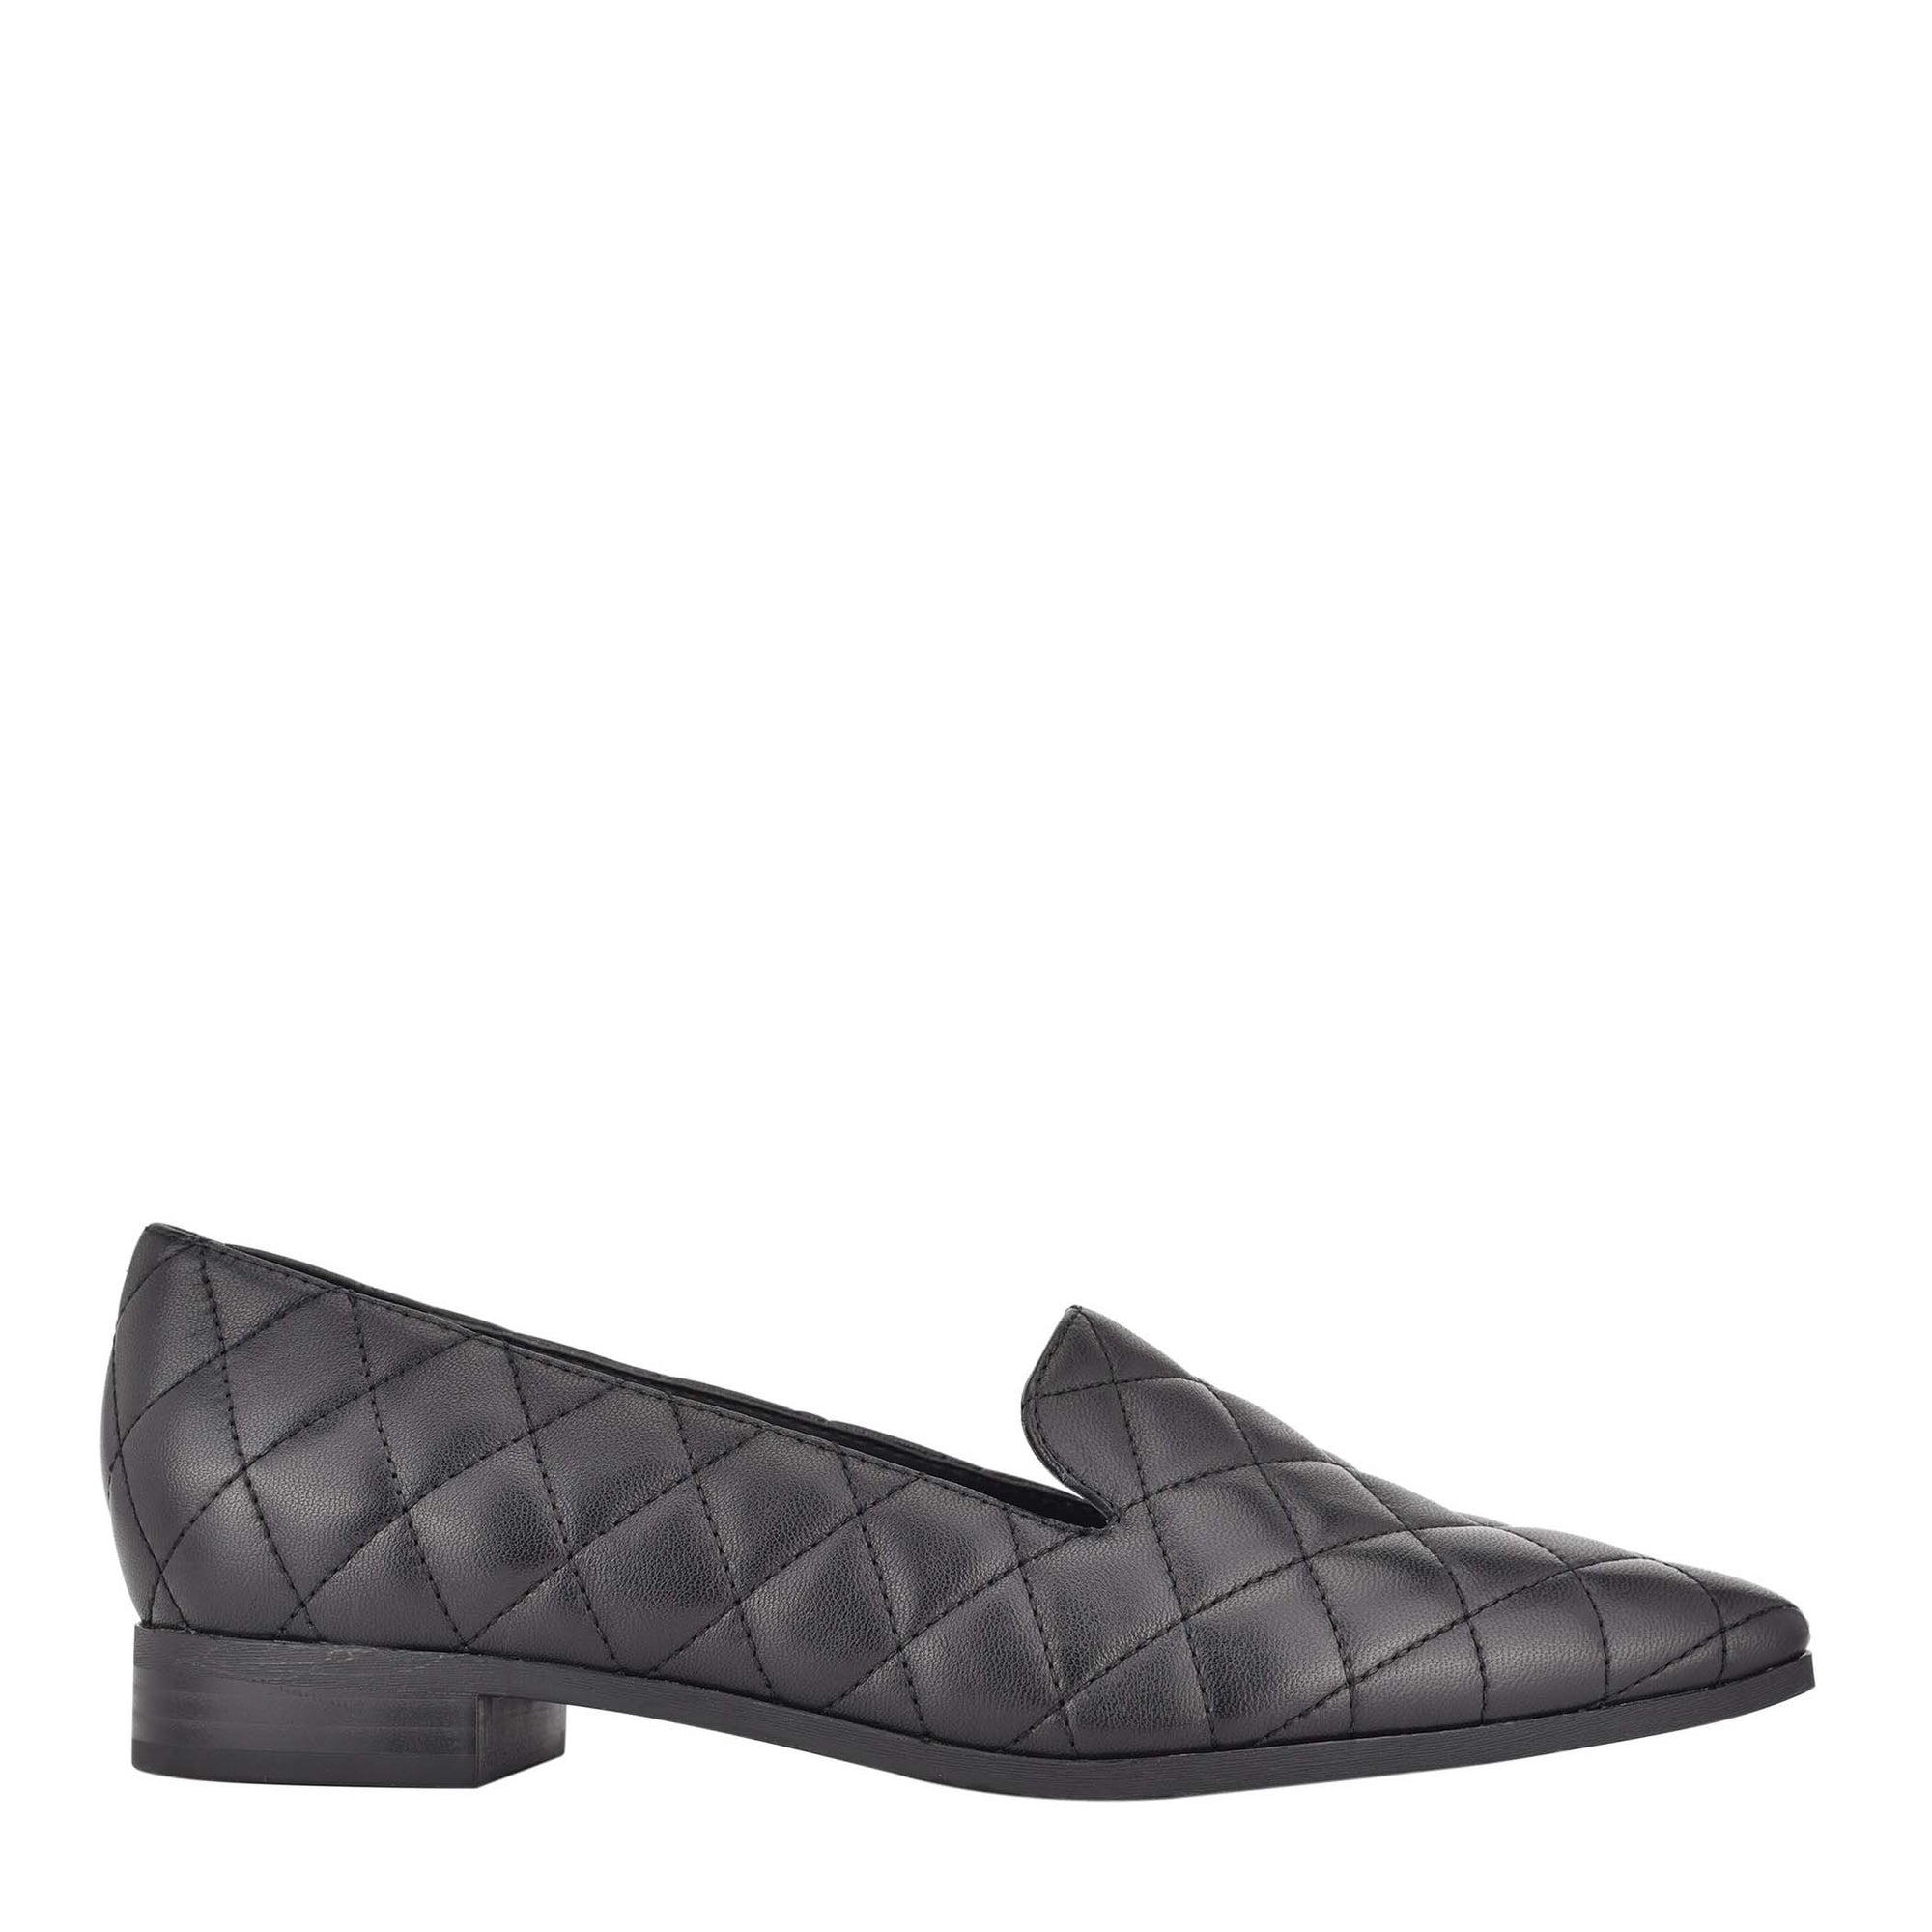 Bravi Loafer